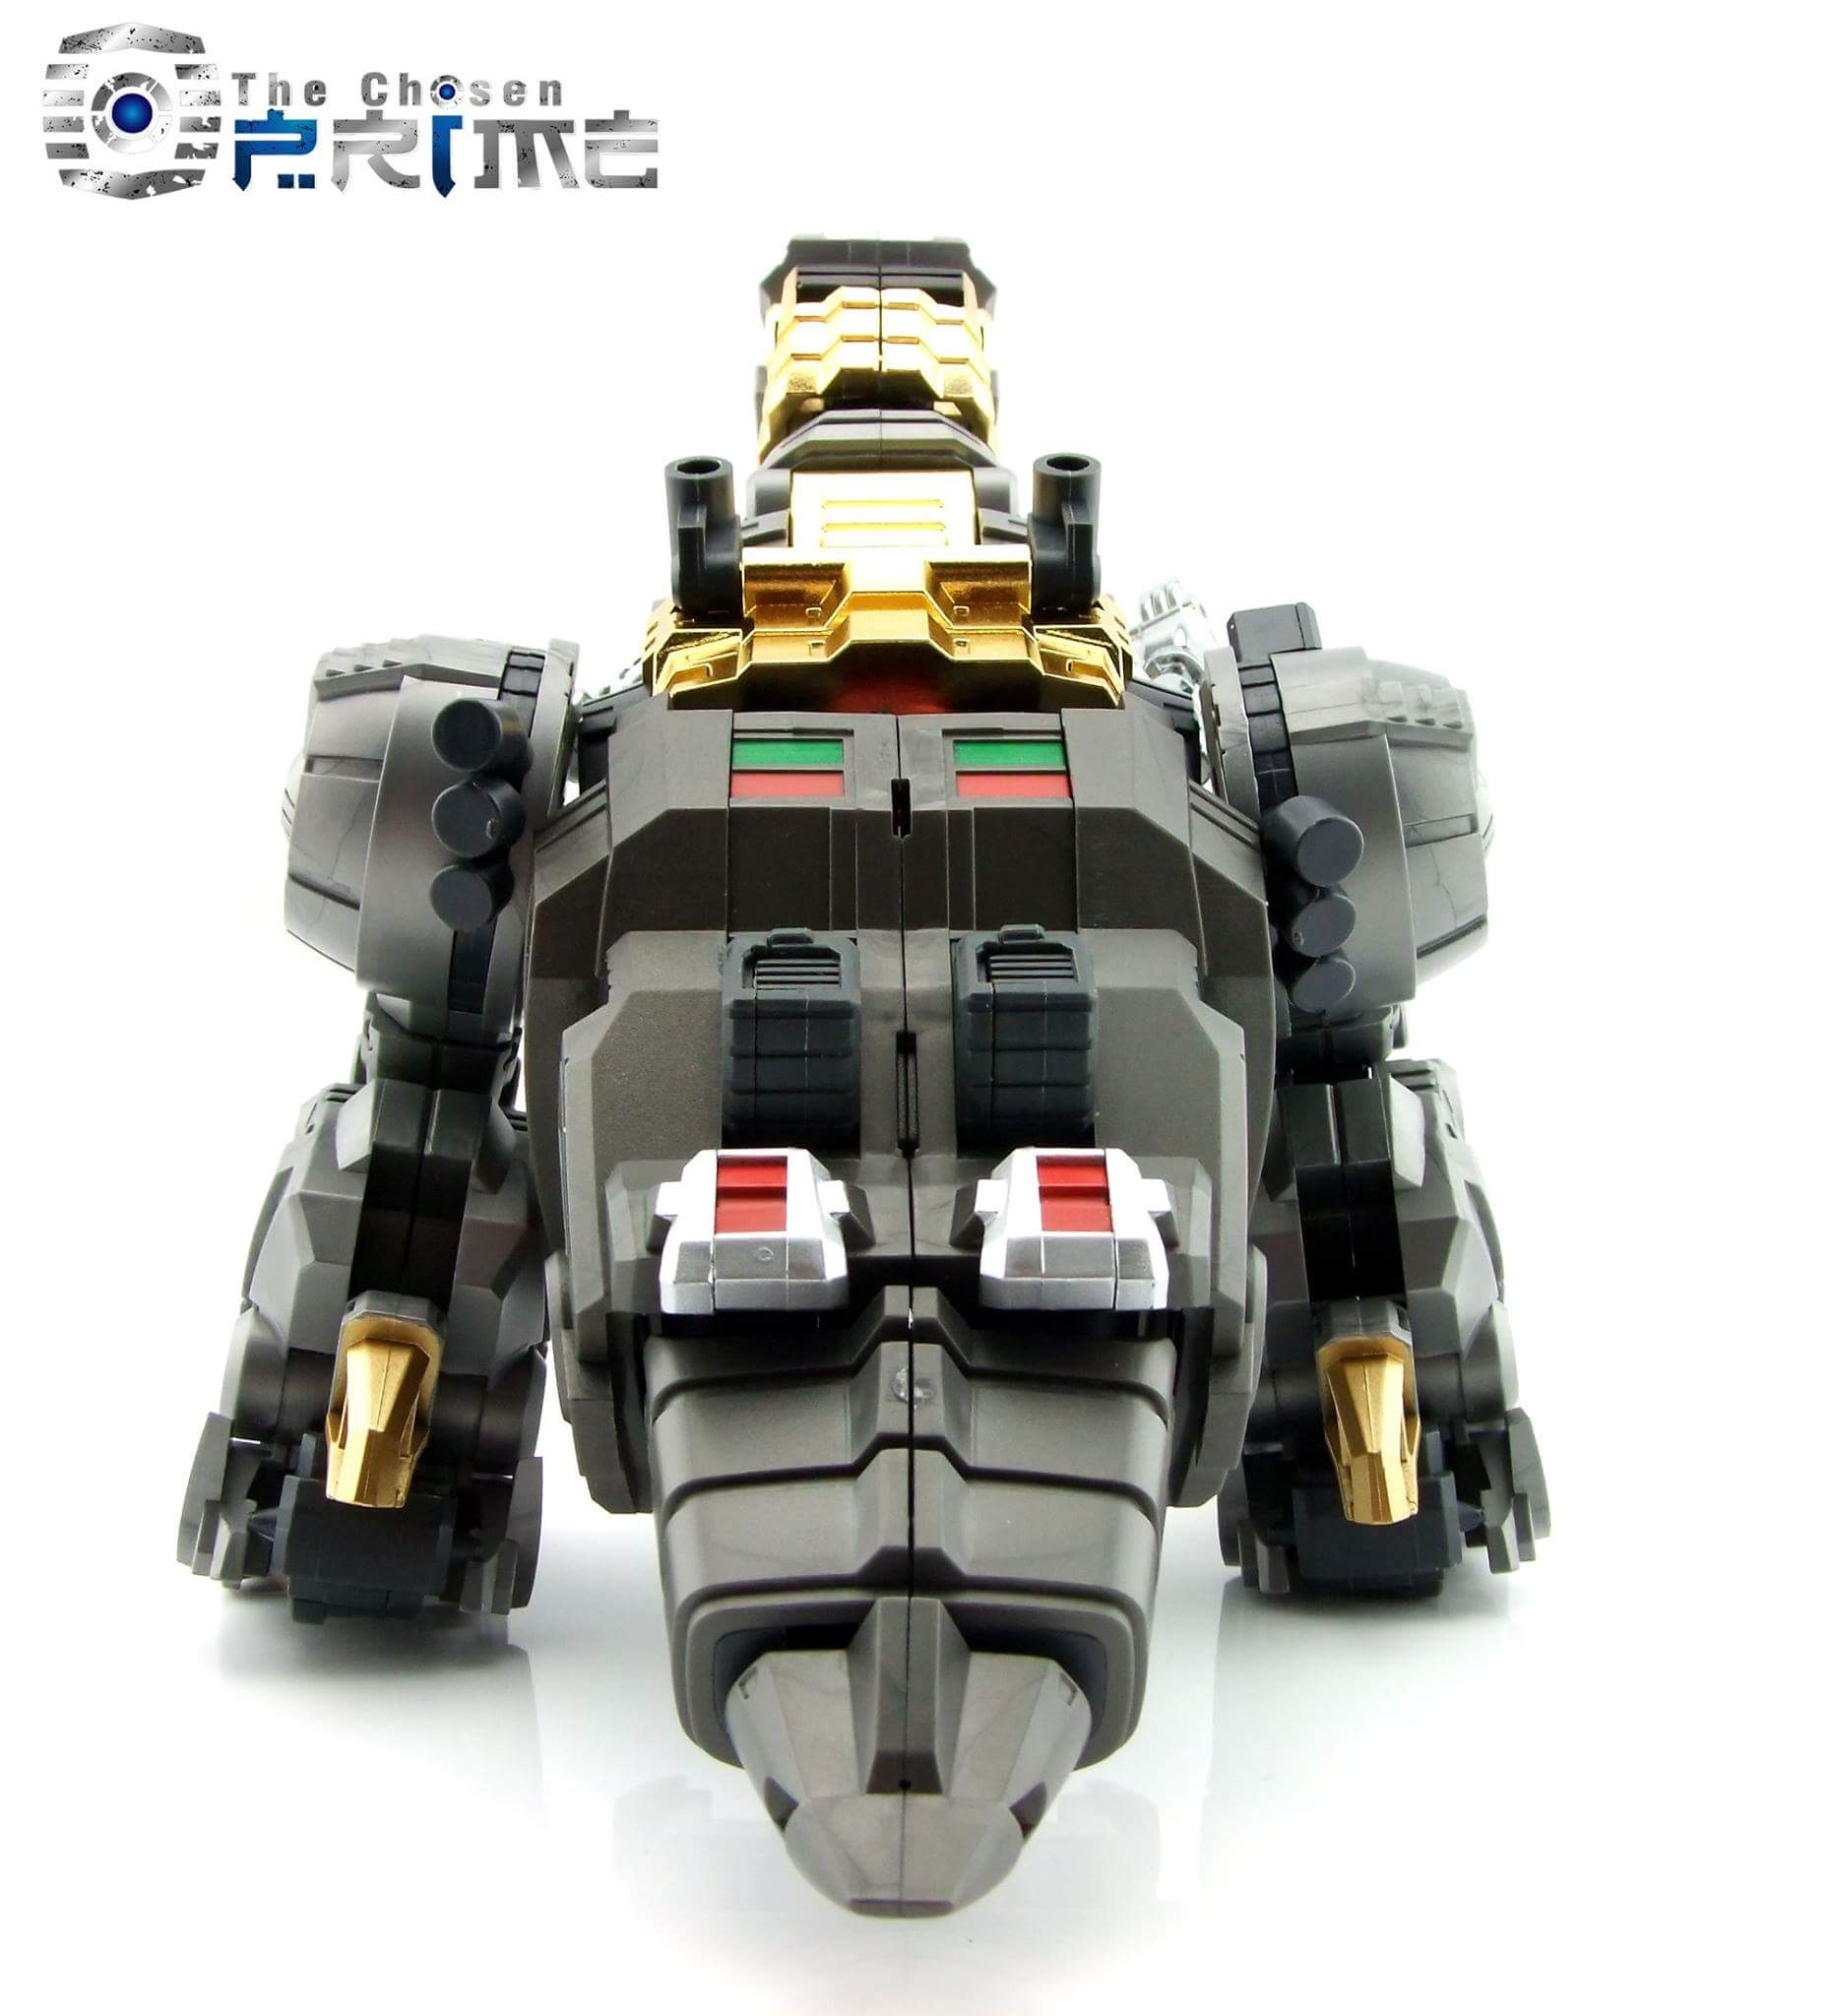 [FansProject] Produit Tiers - Jouets LER (Lost Exo Realm) - aka Dinobots - Page 2 IBi2RUNE